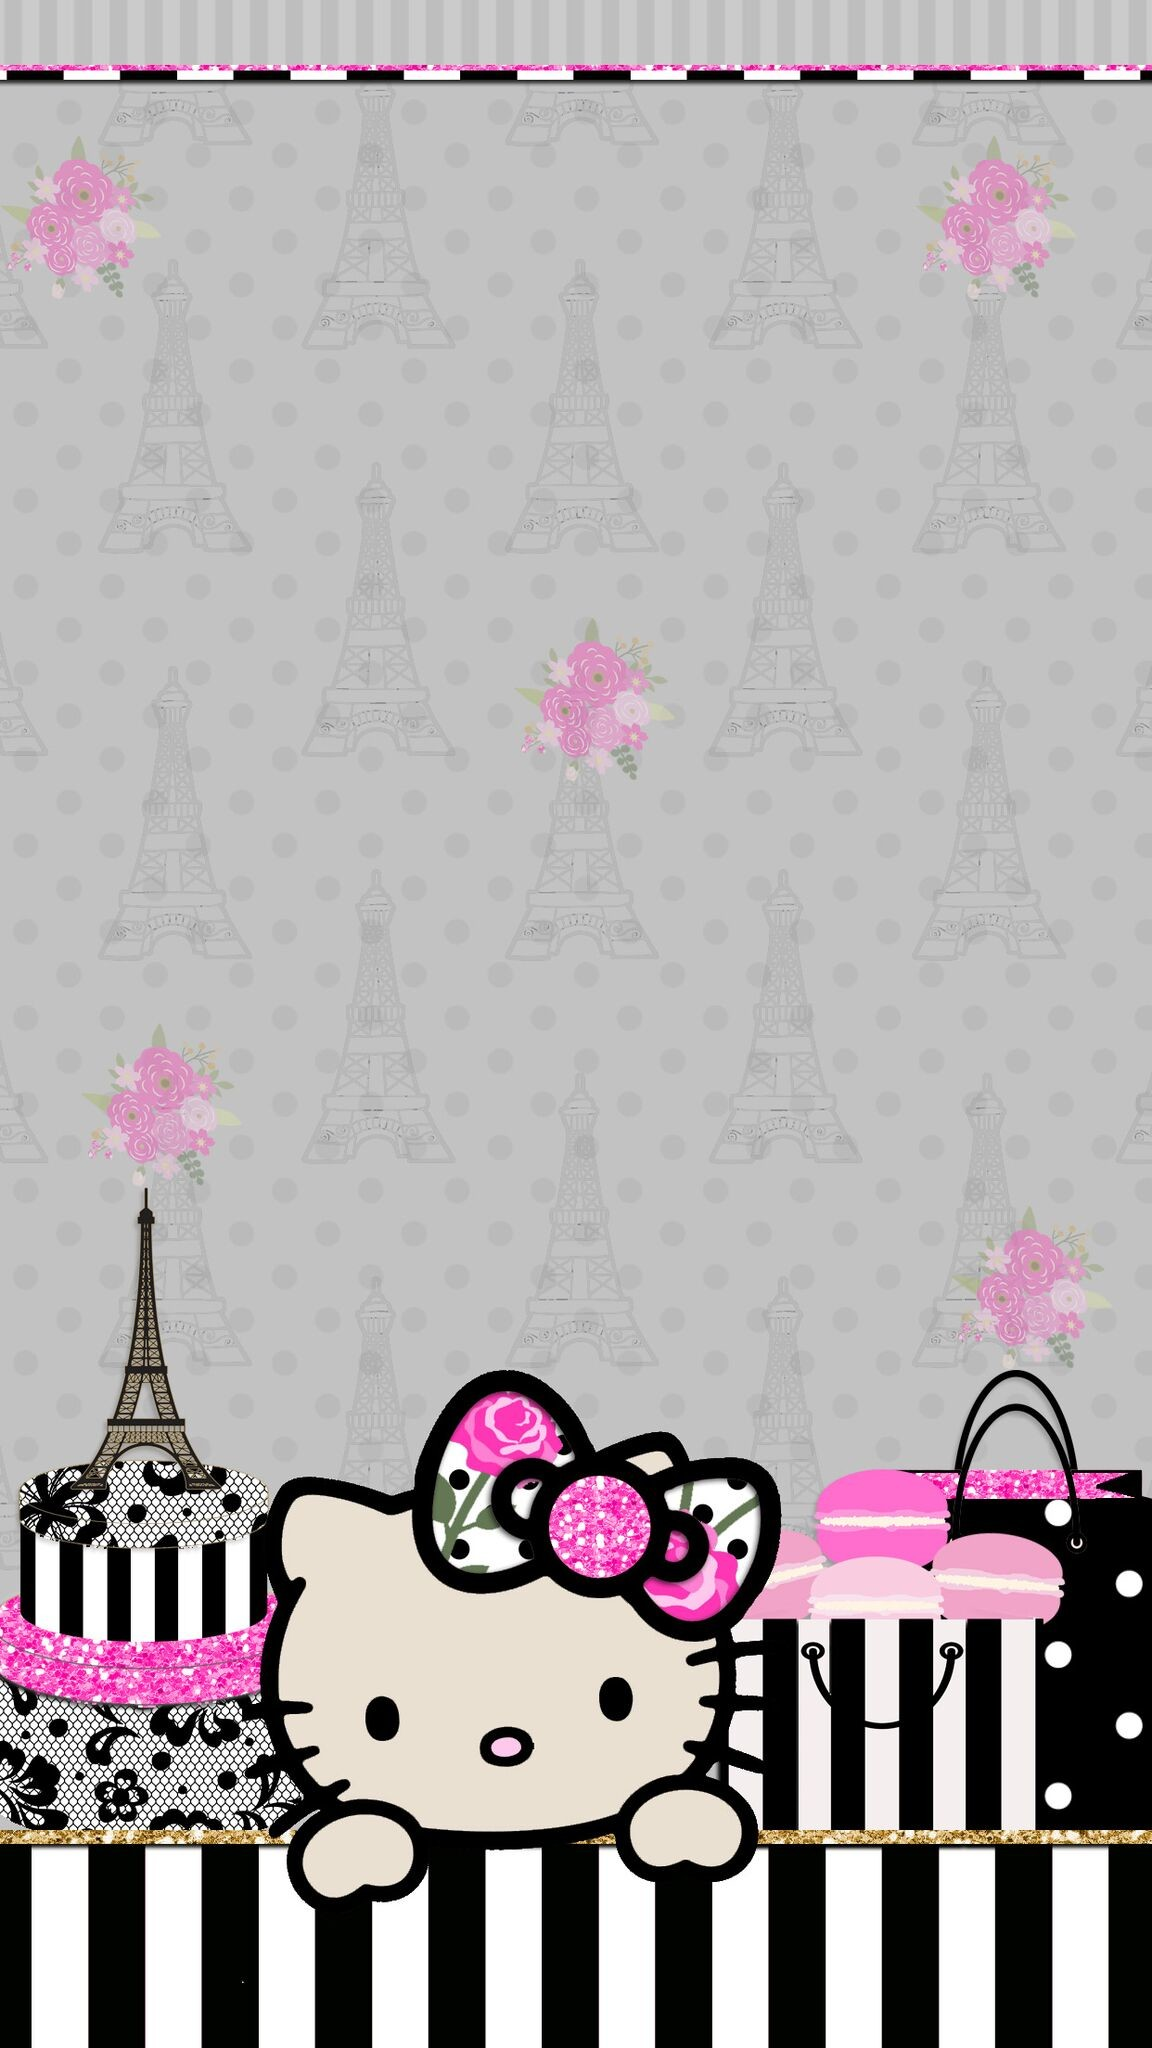 2000x1500 Download 1920x1200 Wallpapers For Hello Kitty Wallpaper Desktop Black